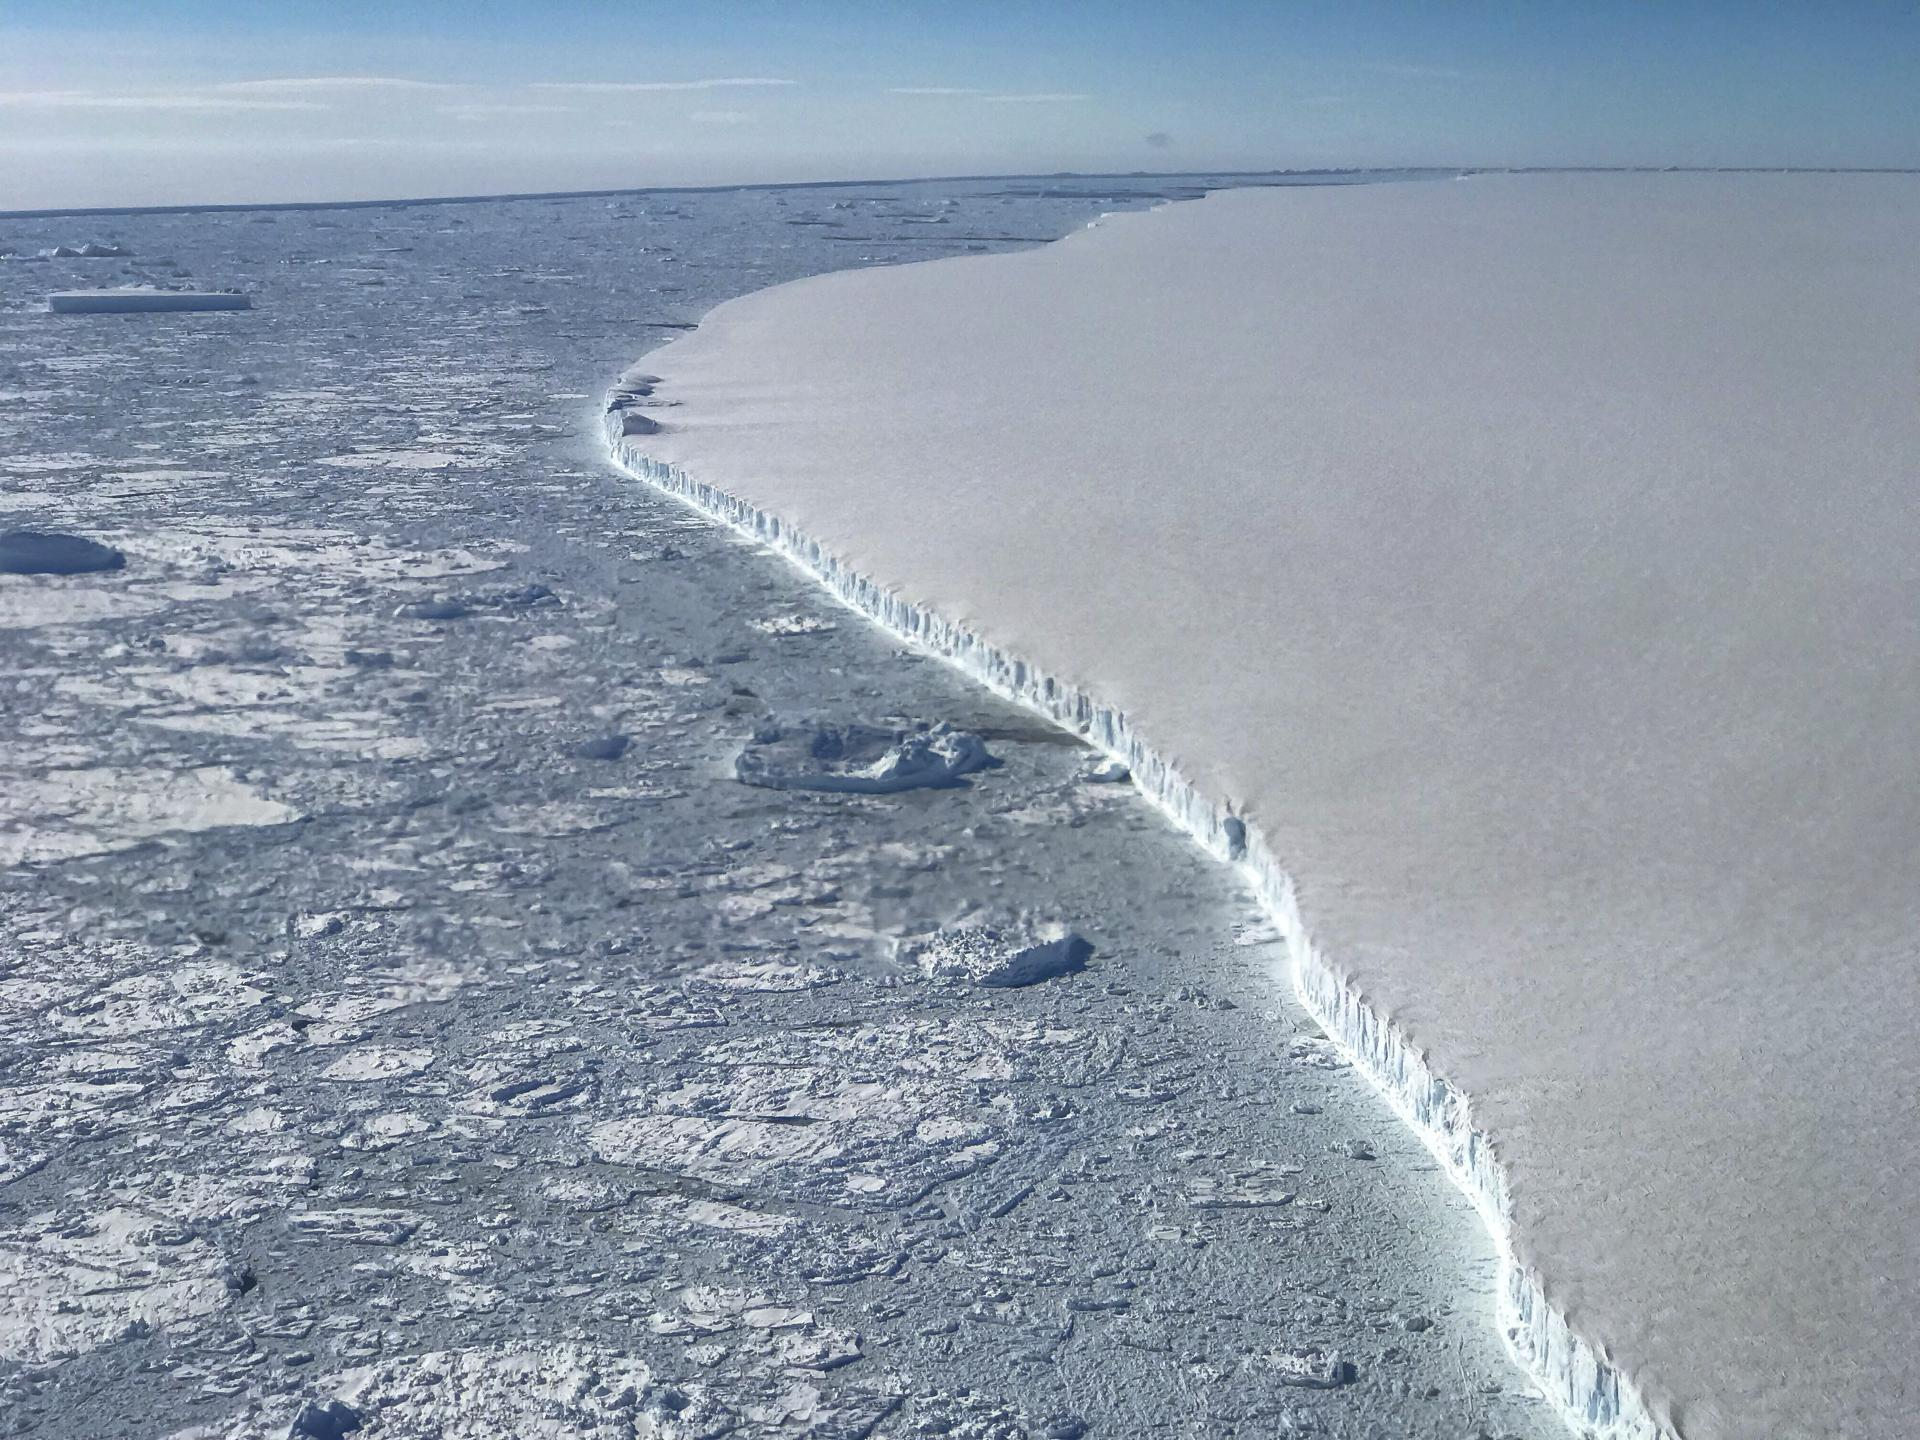 In a NASA photo, the western edge of one of the largest icebergs ever recorded, which broke away from the Antarctic Peninsula last year. The continent's rate of ice loss is speeding up, which is contributing even more to rising sea levels. according to a study published Wednesday in the journal Nature. (Nathan Kurtz/NASA via The New York Times) — FOR EDITORIAL USE ONLY